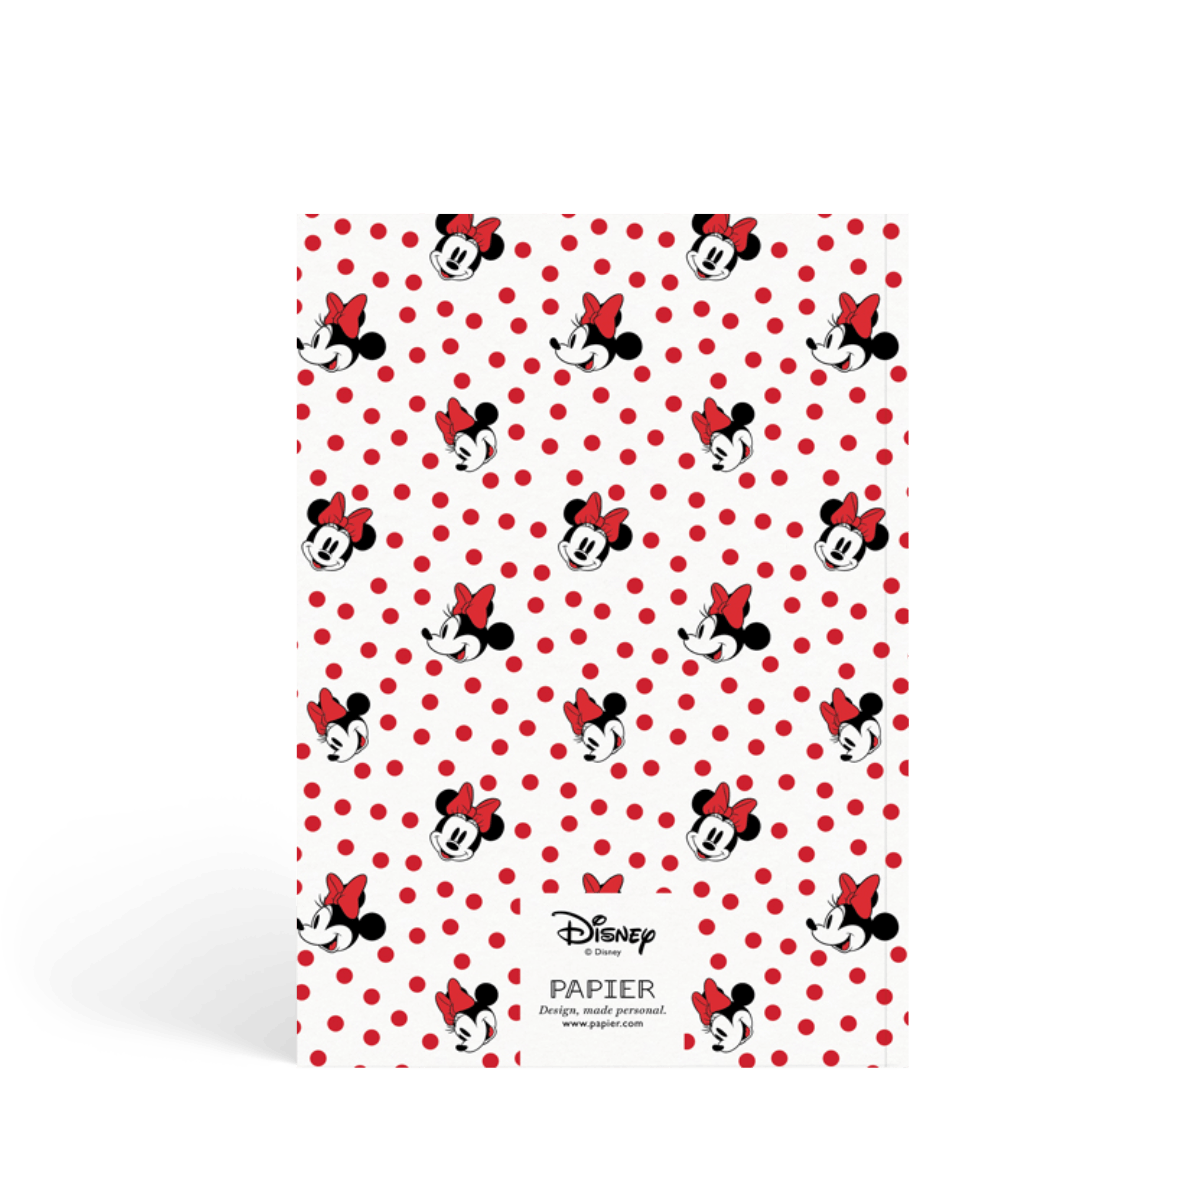 Https%3a%2f%2fwww.papier.com%2fproduct image%2f59252%2f5%2fminnie mouse 14129 back 1543495939.png?ixlib=rb 1.1